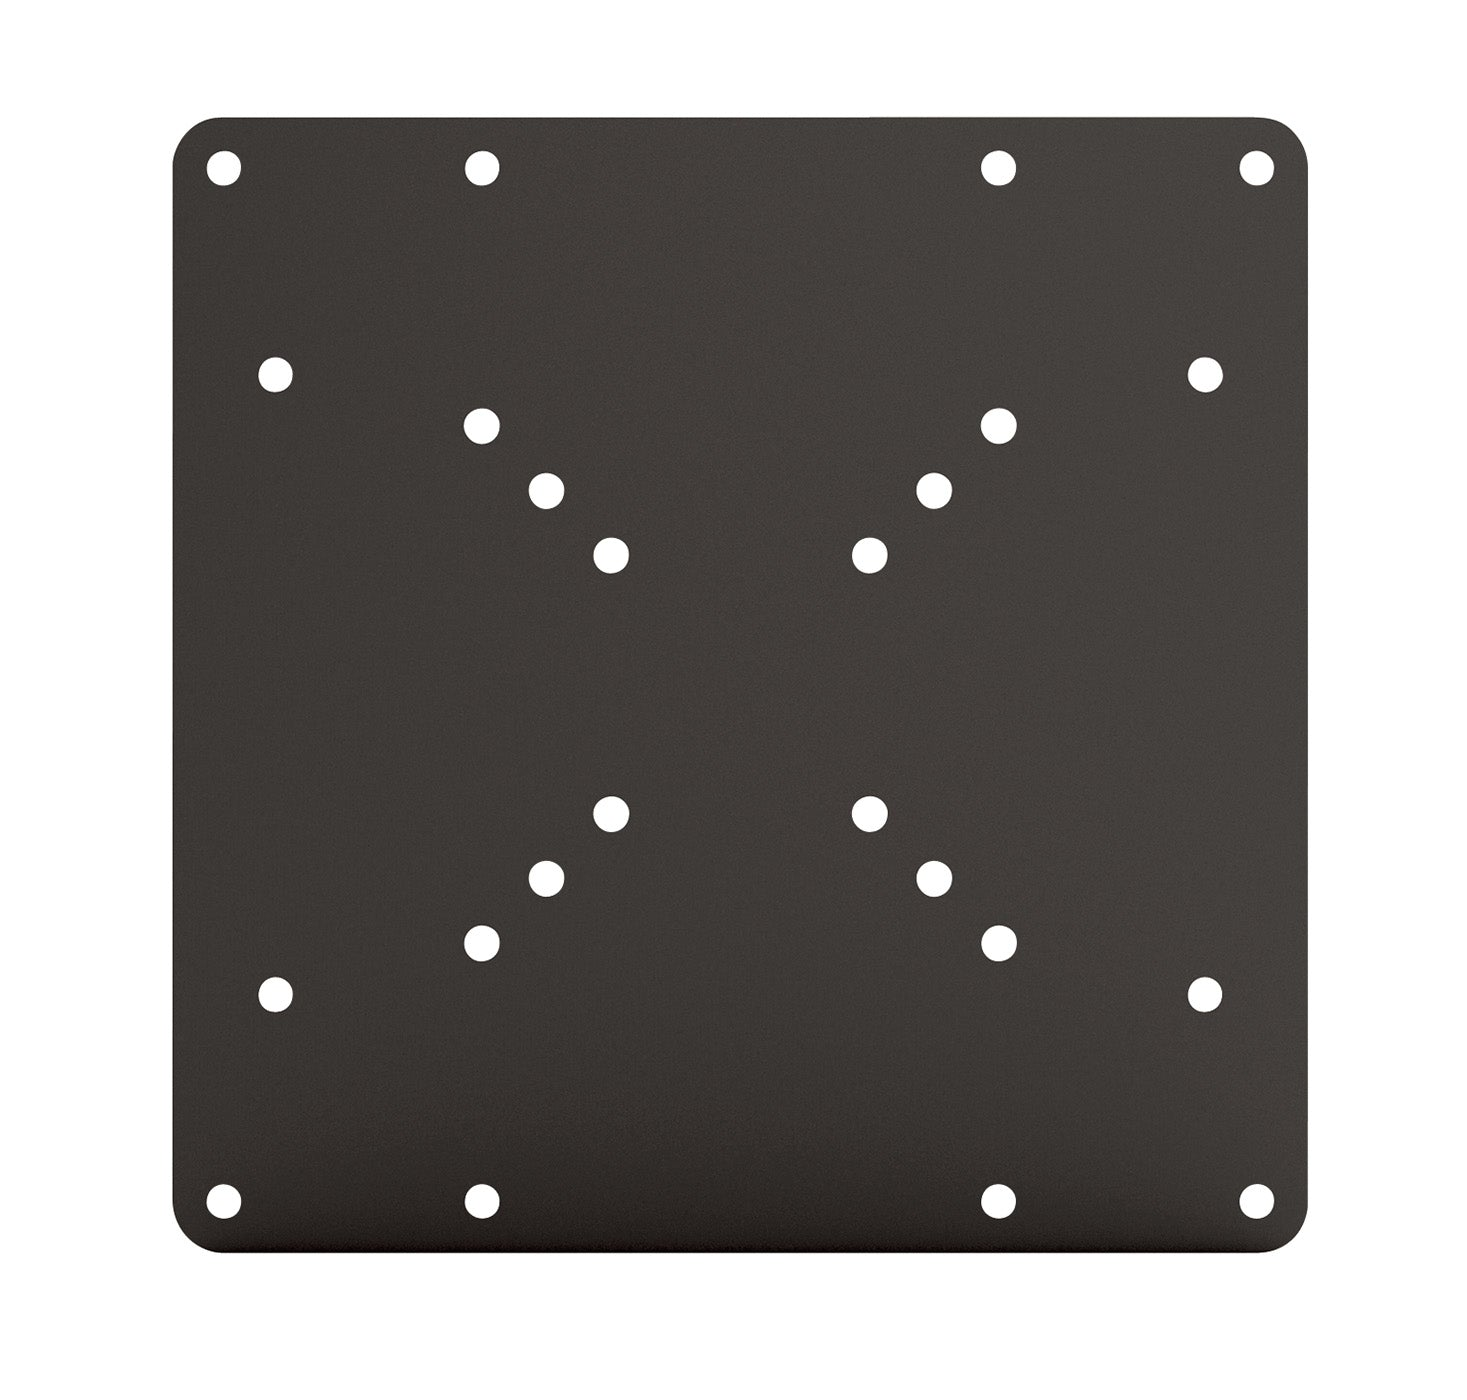 VESA Mount Adapter Plate for TV Mounts